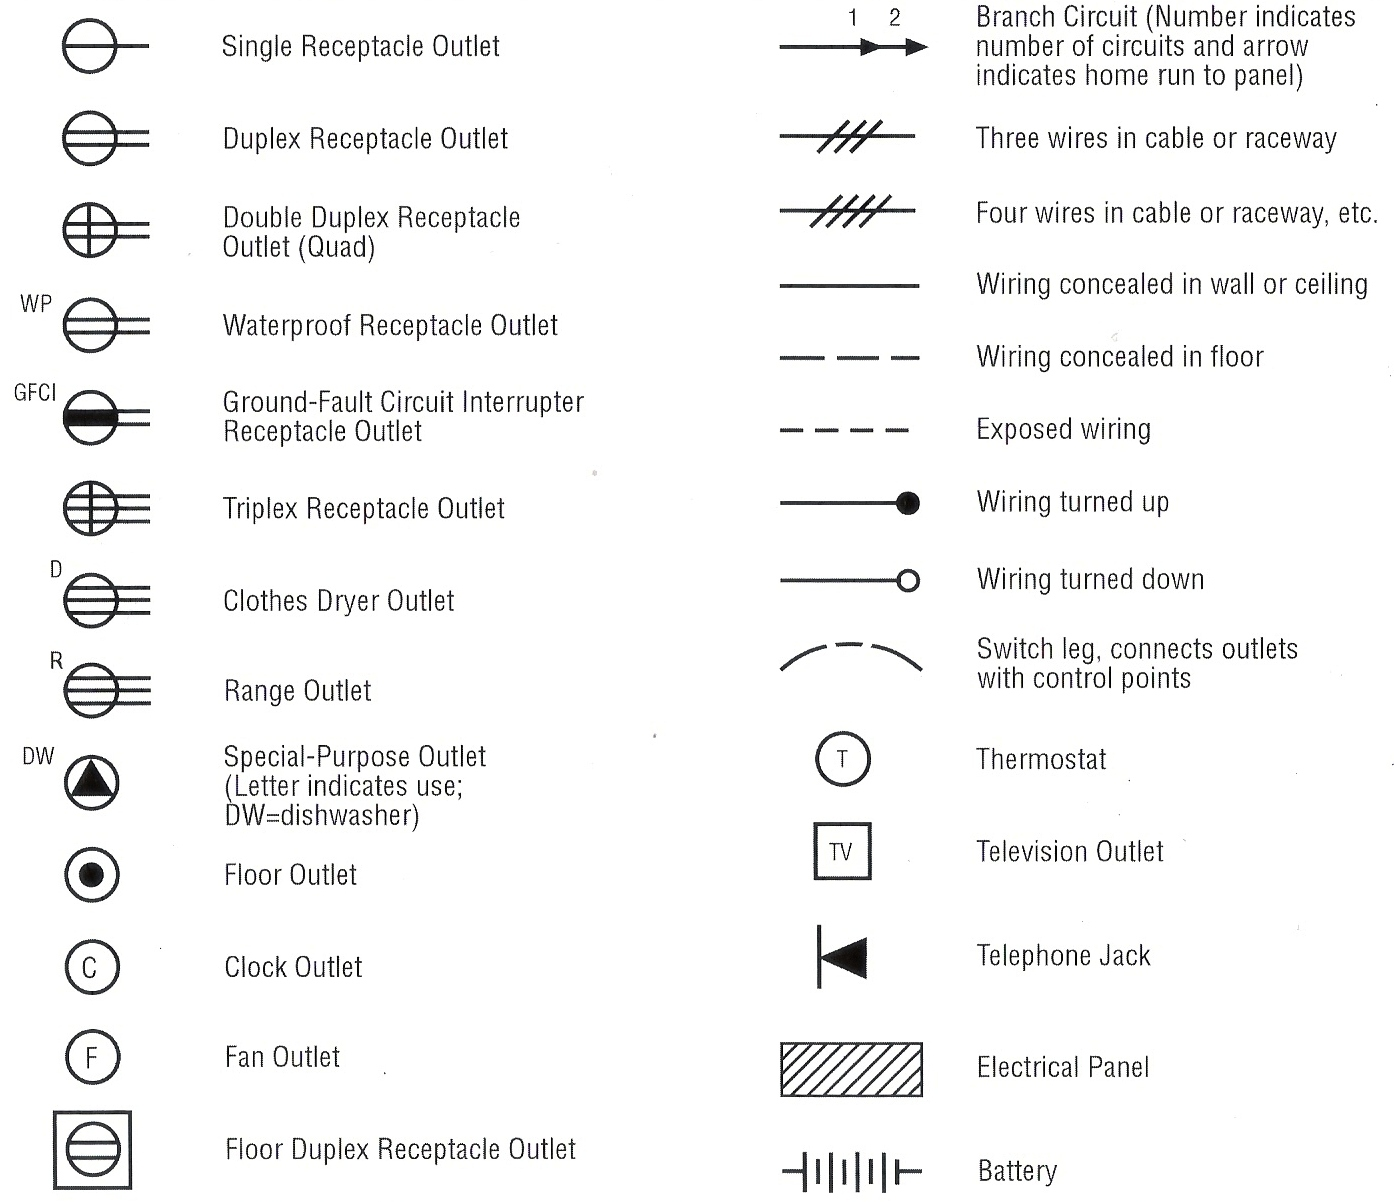 Grid Solar Panels Wiring Diagram additionally Automotive Wire Gauge Size Chart additionally Electrical Plan Symbols moreover Blank Page as well Engine Valve Train Diagram. on sub panel wiring diagram